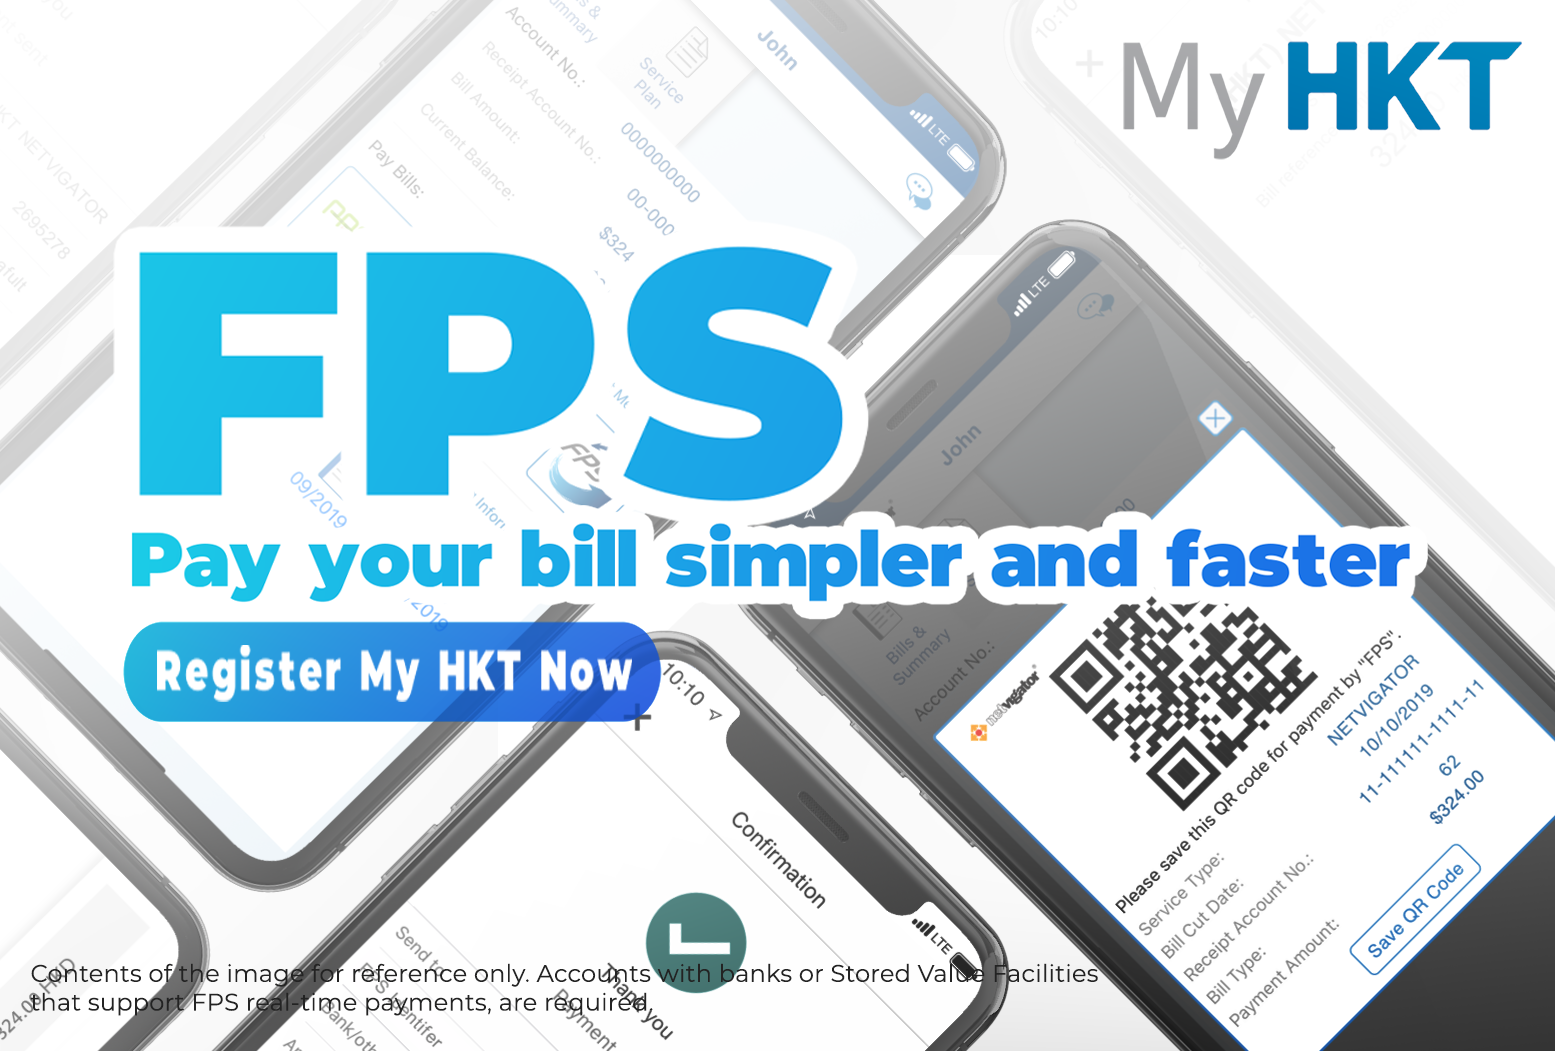 My HKT: Pay your bill simpler and faster with FPS